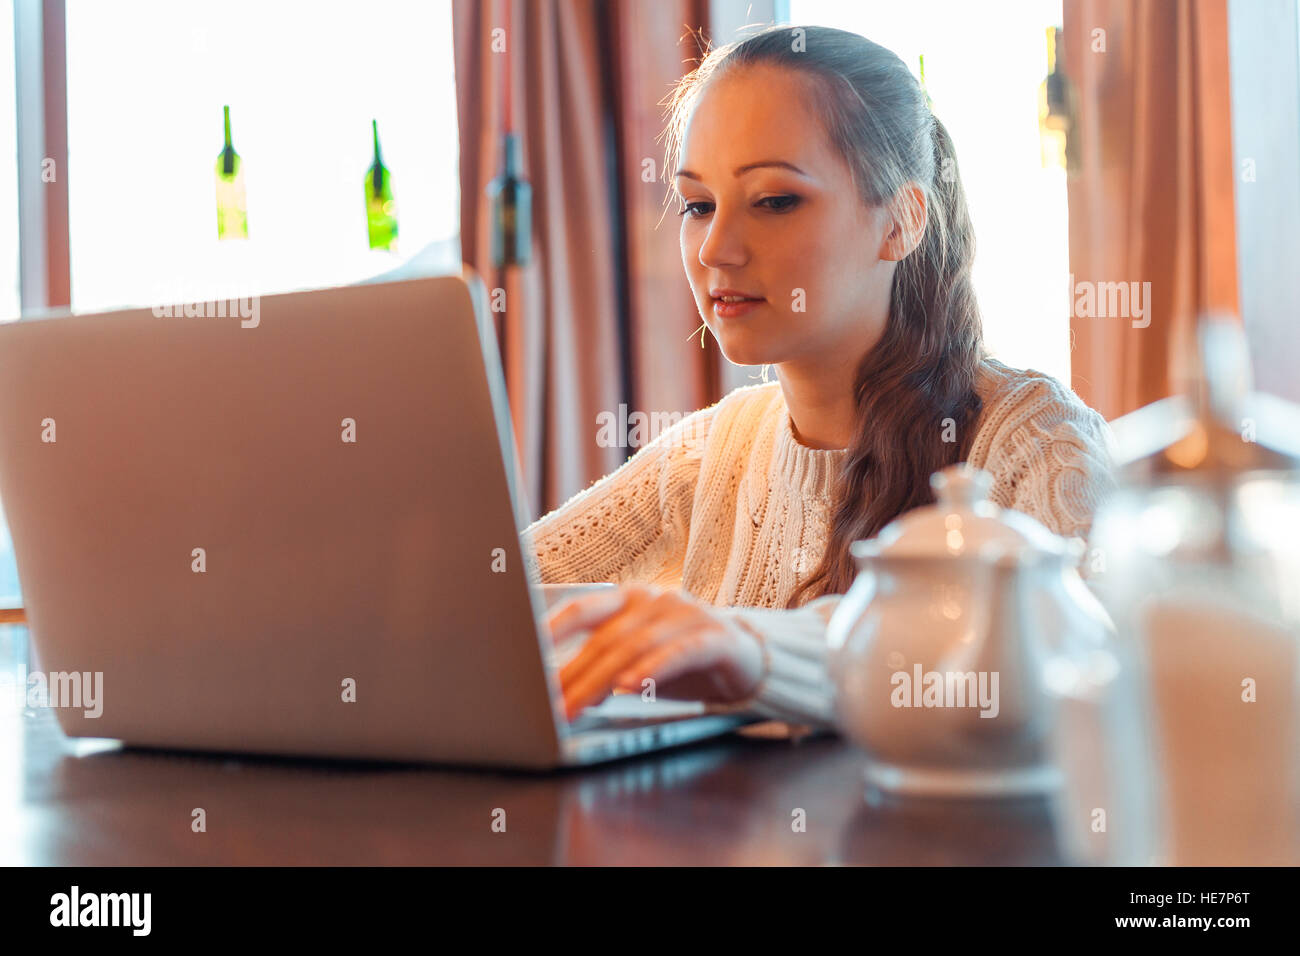 Yong woman a work at laptop in cafe - Stock Image